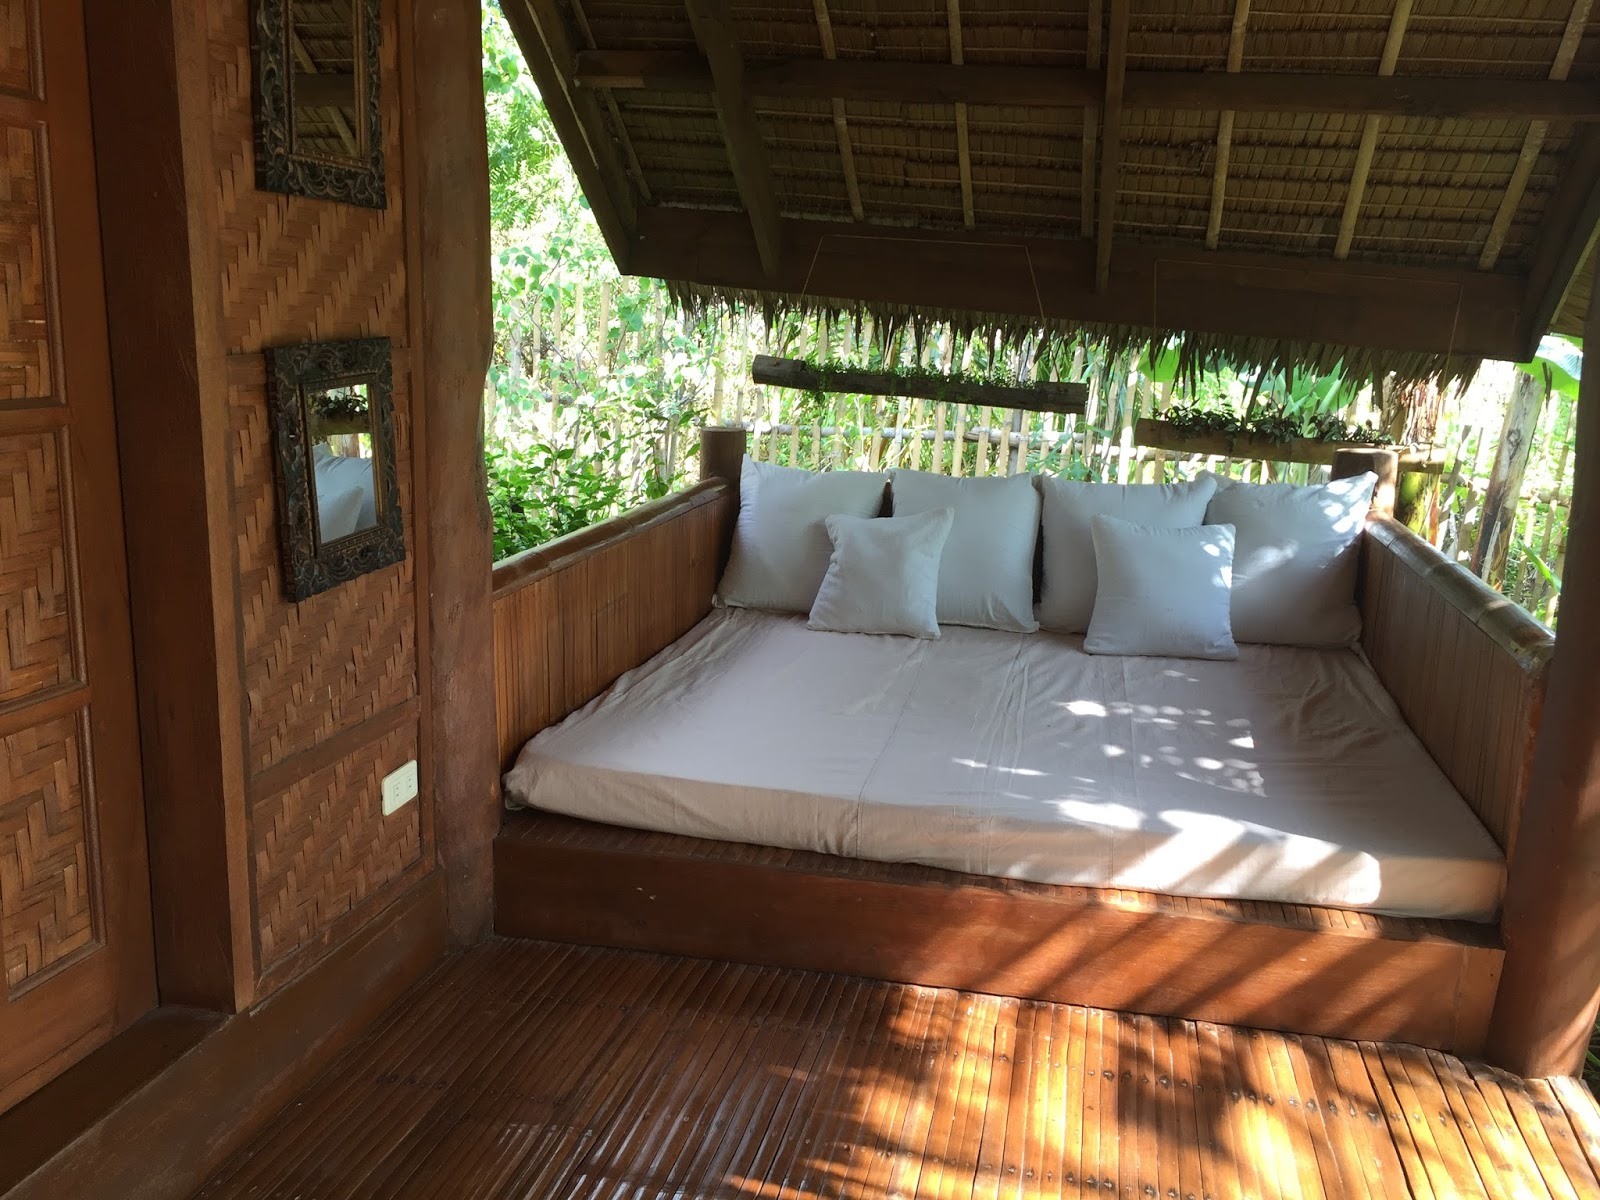 Chellesguesthouse and Backpackers - Home | Facebook